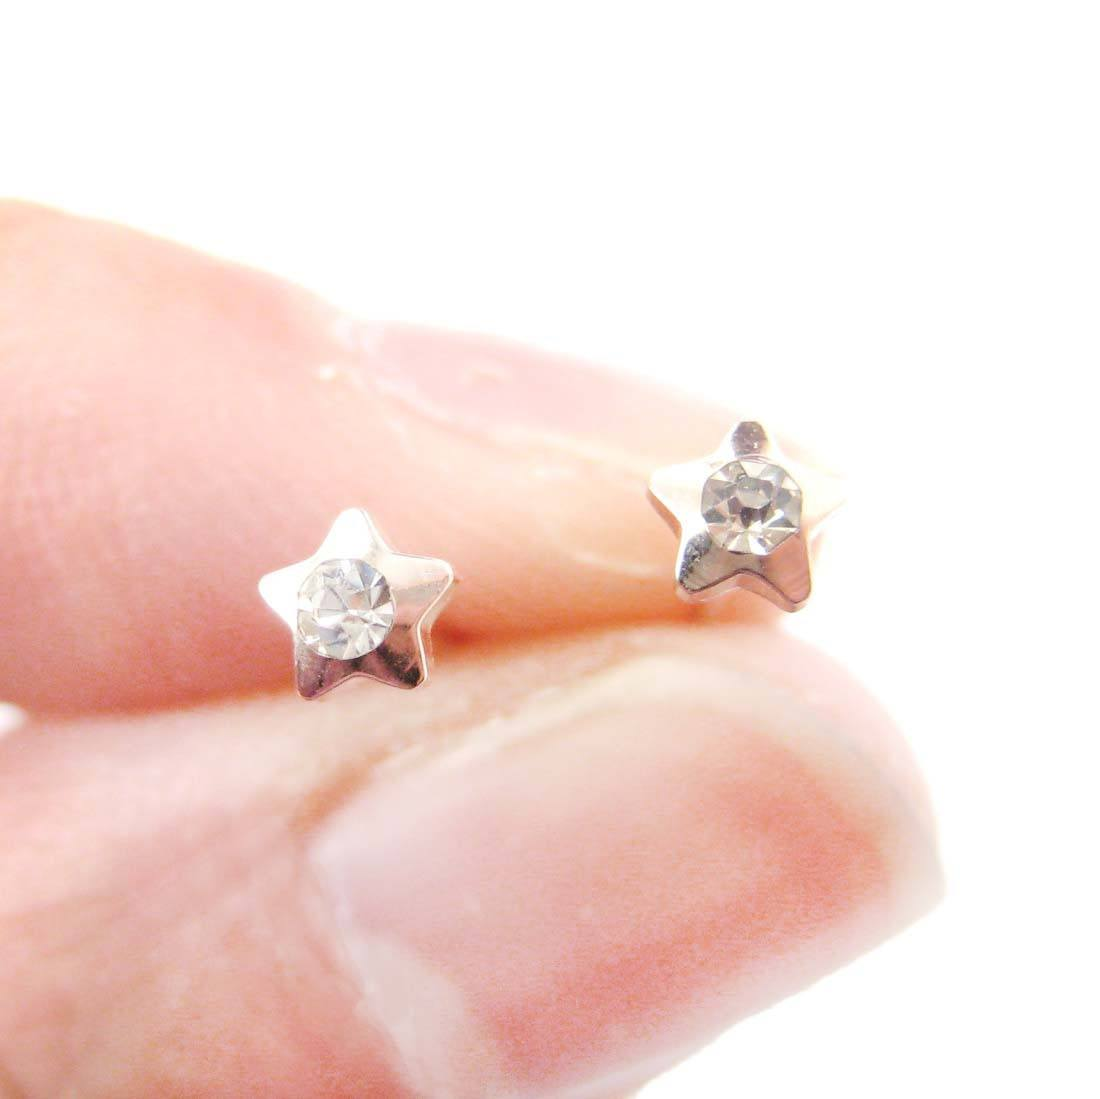 Tiny Star Shaped Stud Earrings in Rose Gold with Rhinestones | DOTOLY